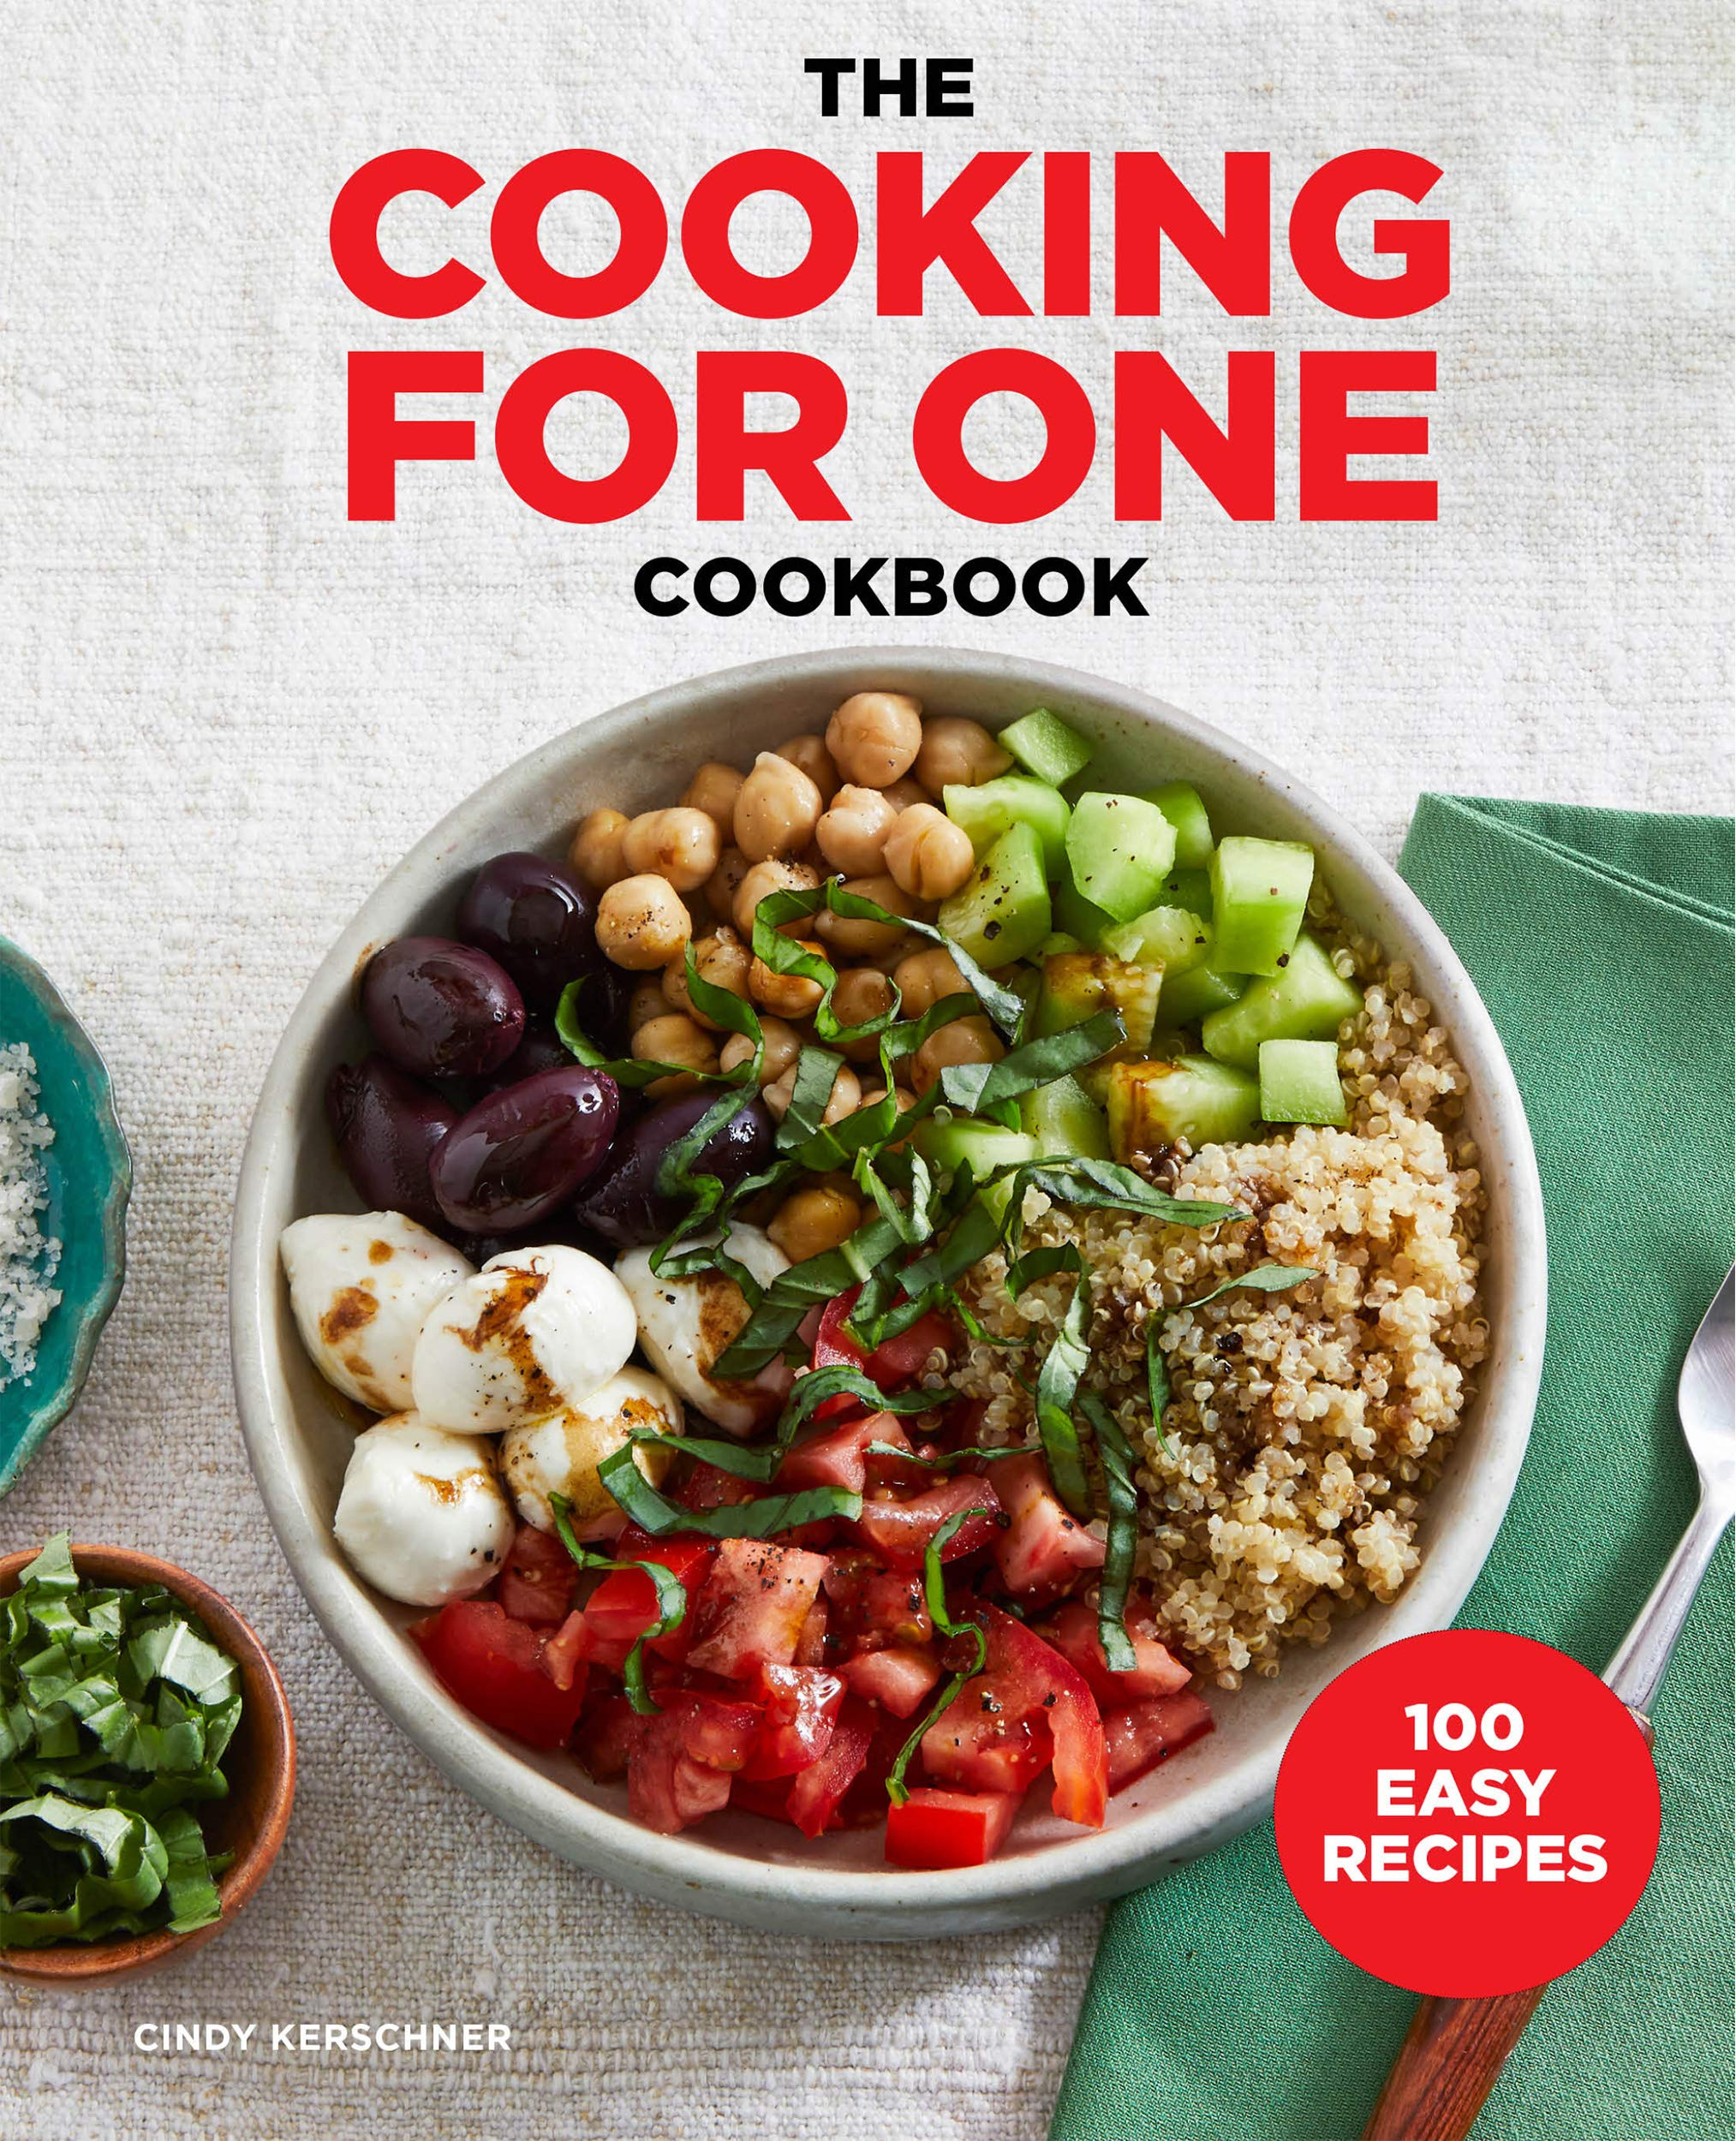 The Cooking For One Cookbook